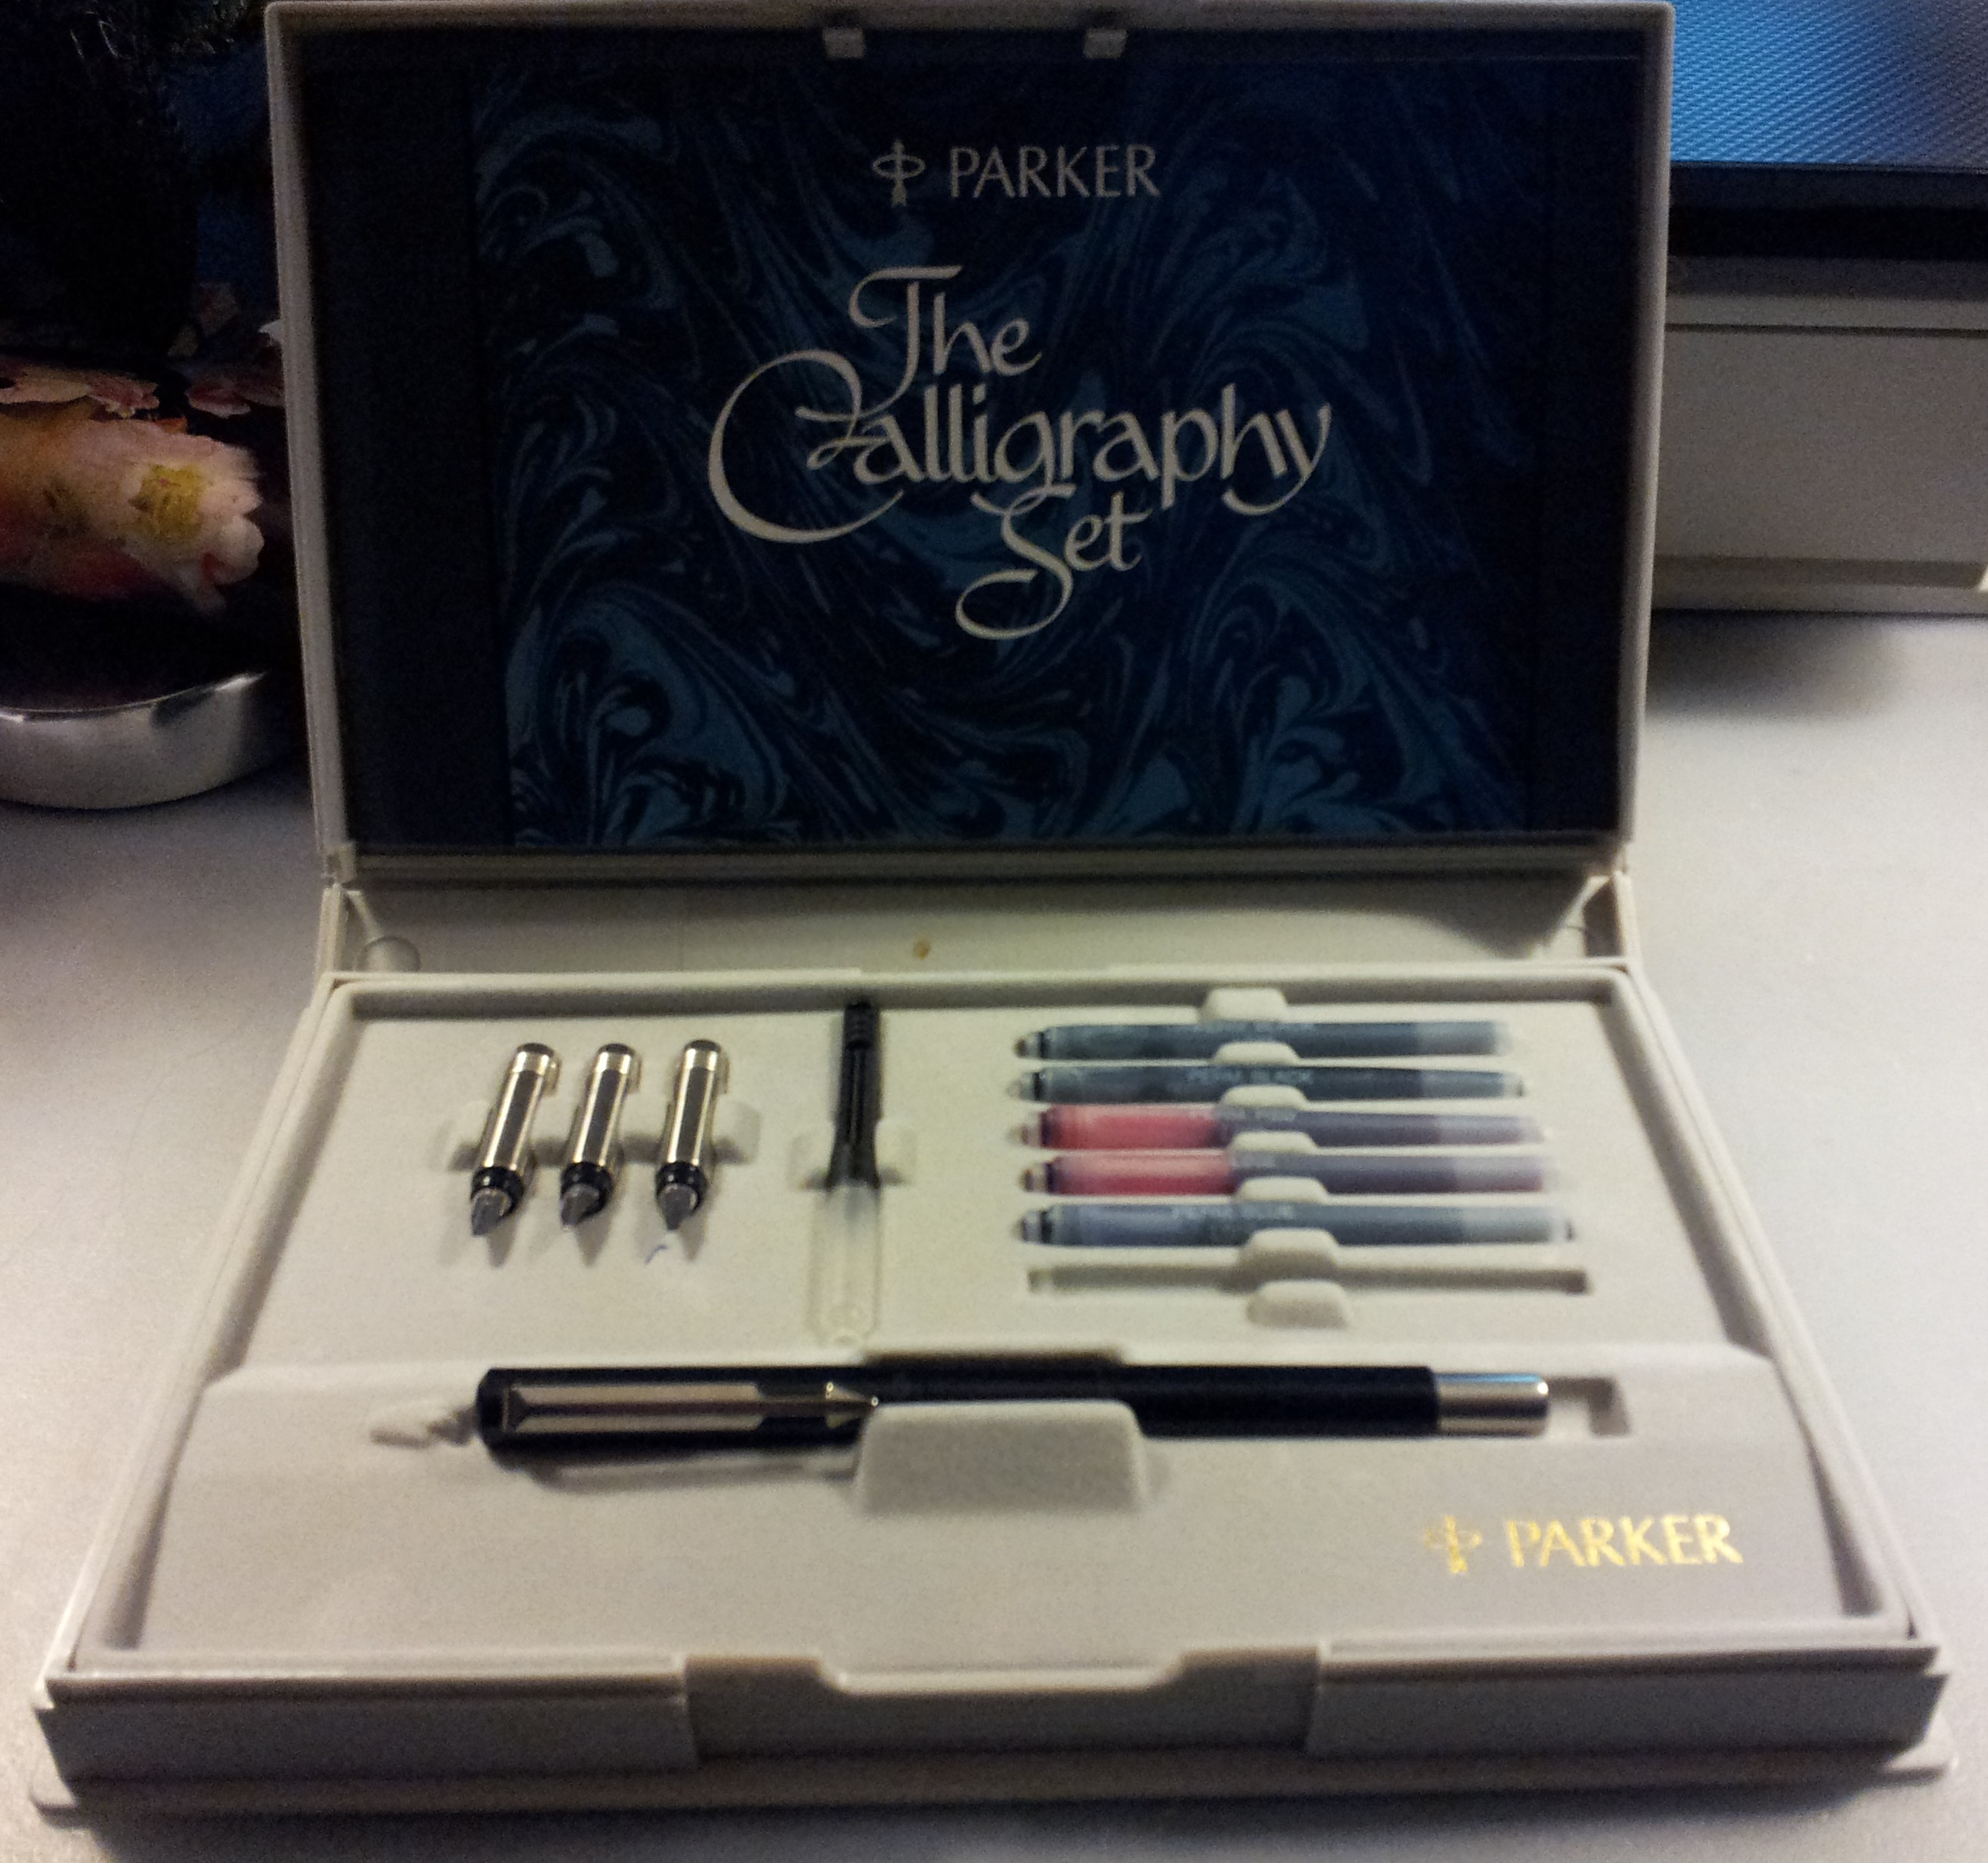 Parker Vector Calligraphy Set Inlovewithjournals